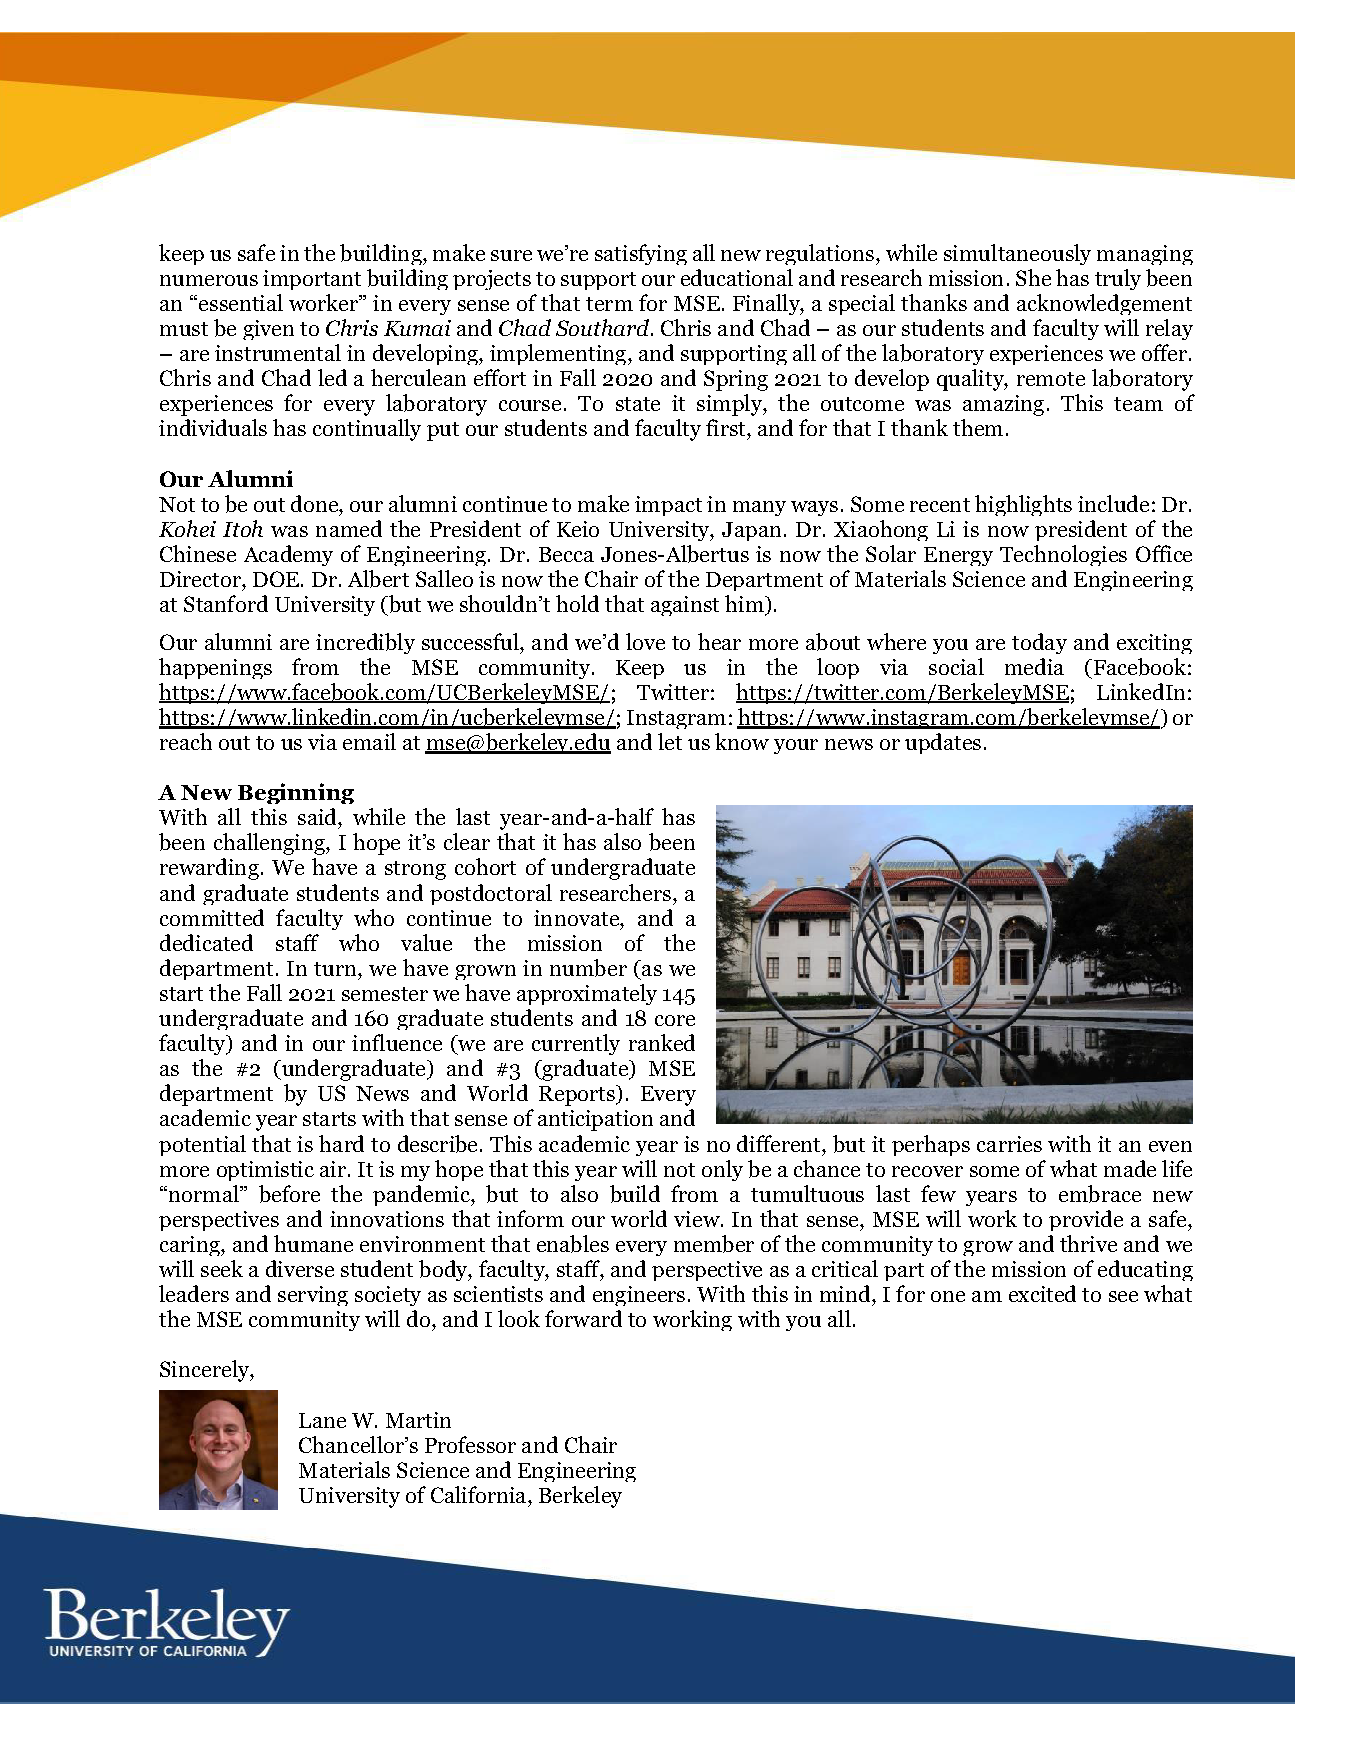 MSE Welcome-Recap Letter_Fall2021 (1)_Page_4